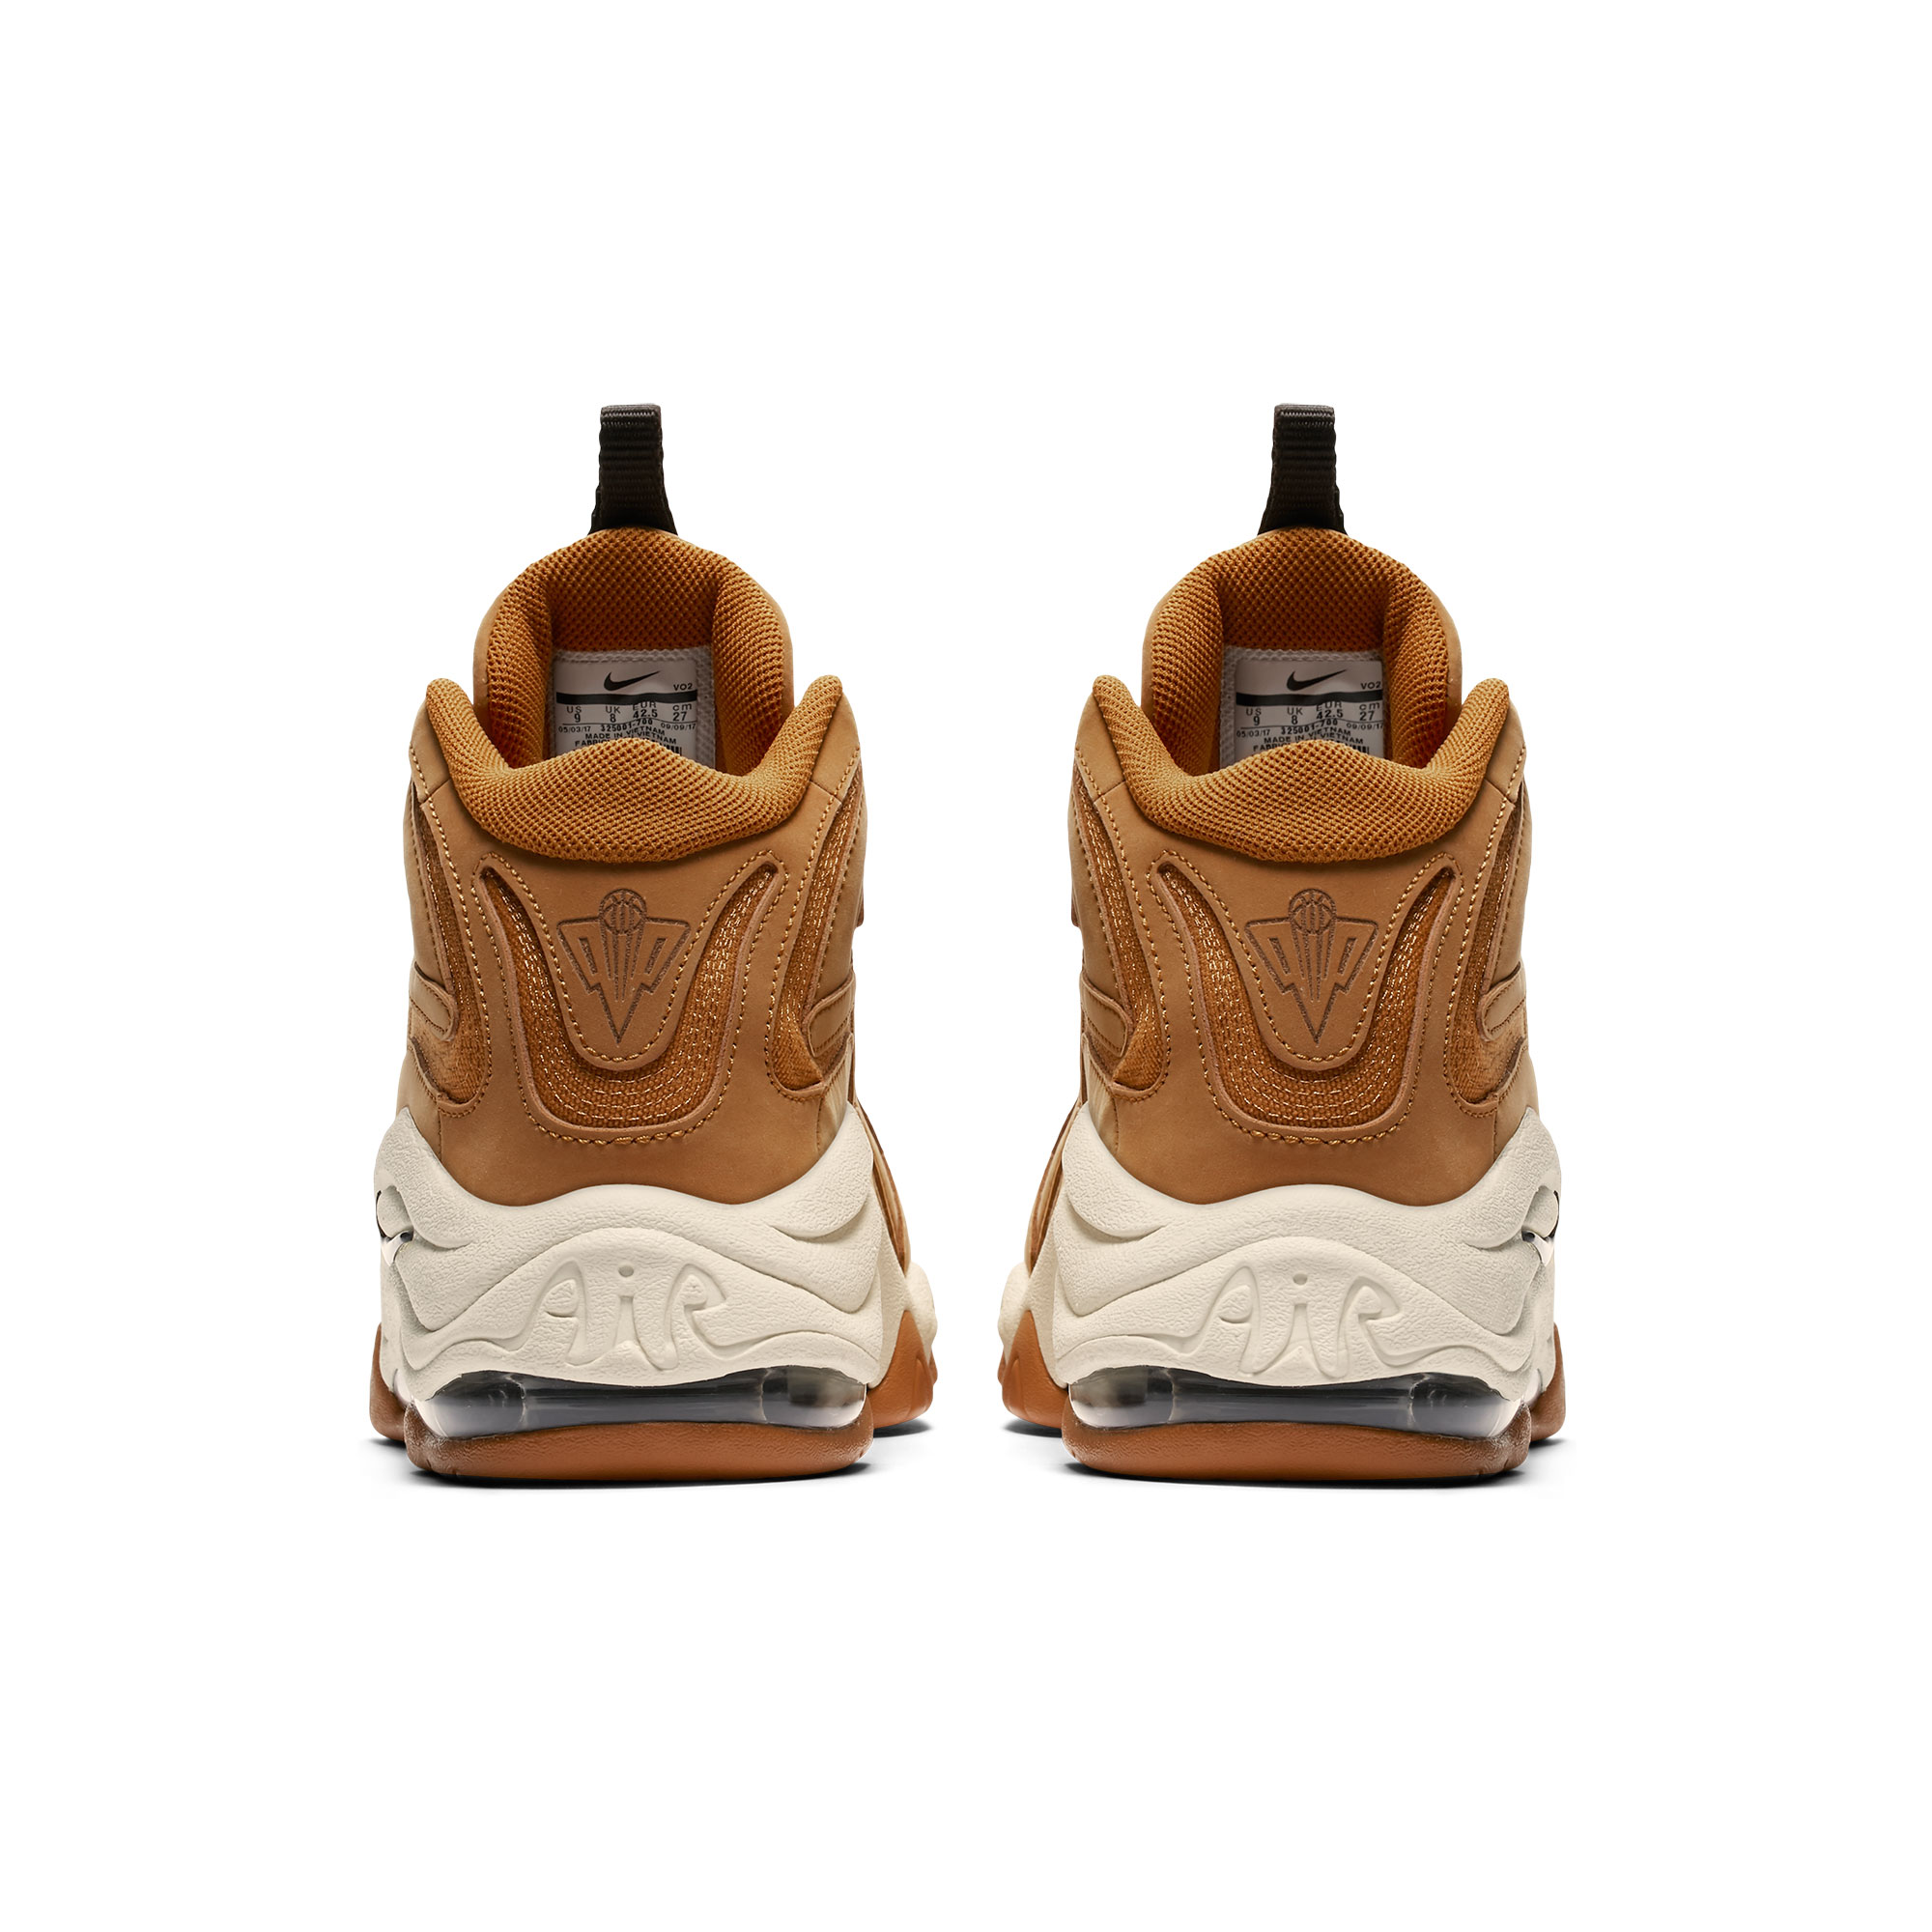 Original New Arrival Authentic NIKE AIR PIPPEN Mens Basketball Shoes  Sneakers 325001 Sport Outdoor Comfortable-in Basketball Shoes from Sports  ...